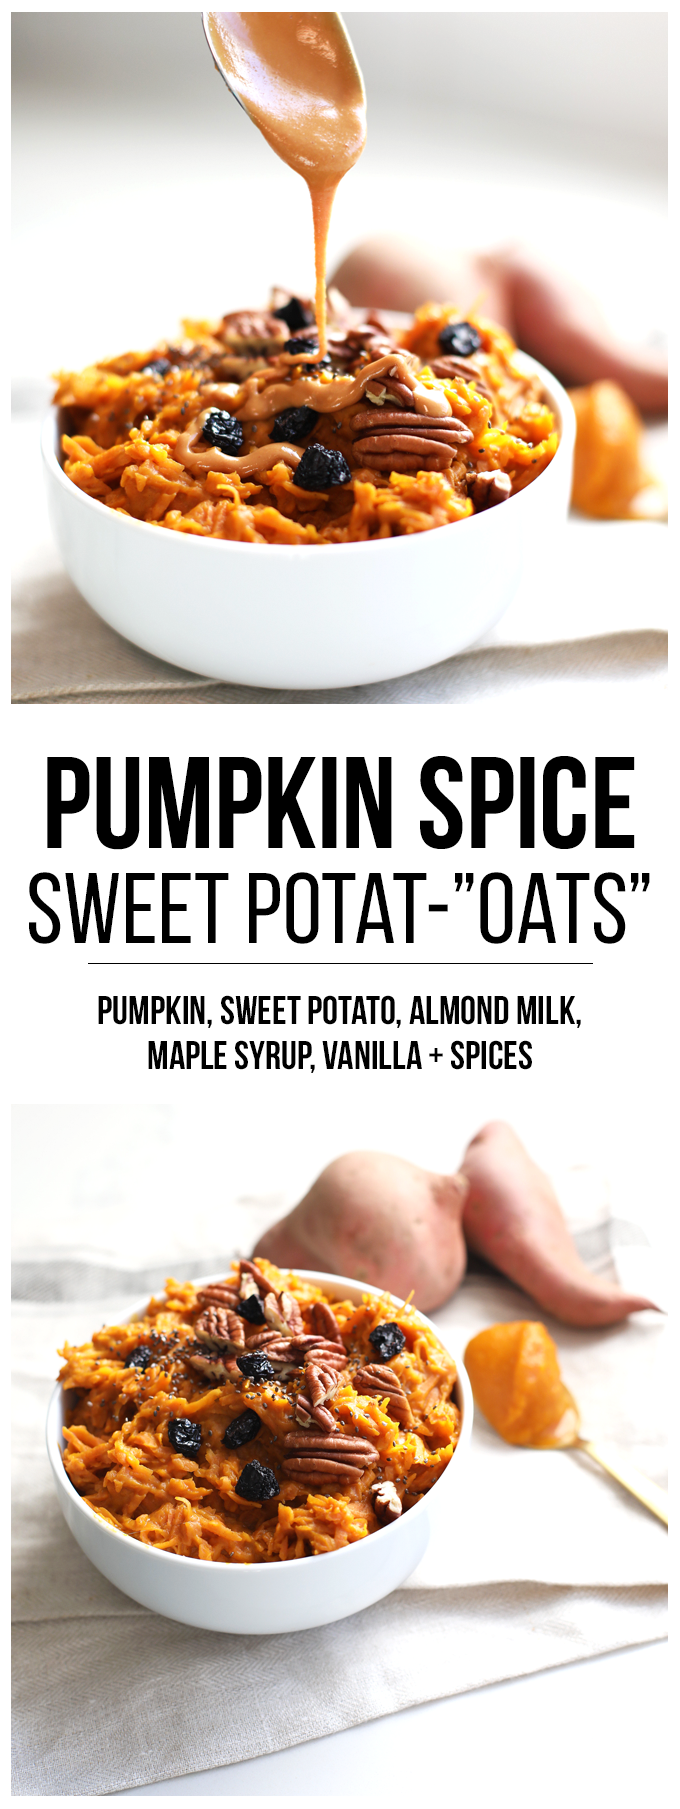 "Pumpkin Spice Sweet Potat-""Oats"" are a great way to have a warm and grain free breakfast! Top with nut butter and chia seeds for extra protein!"